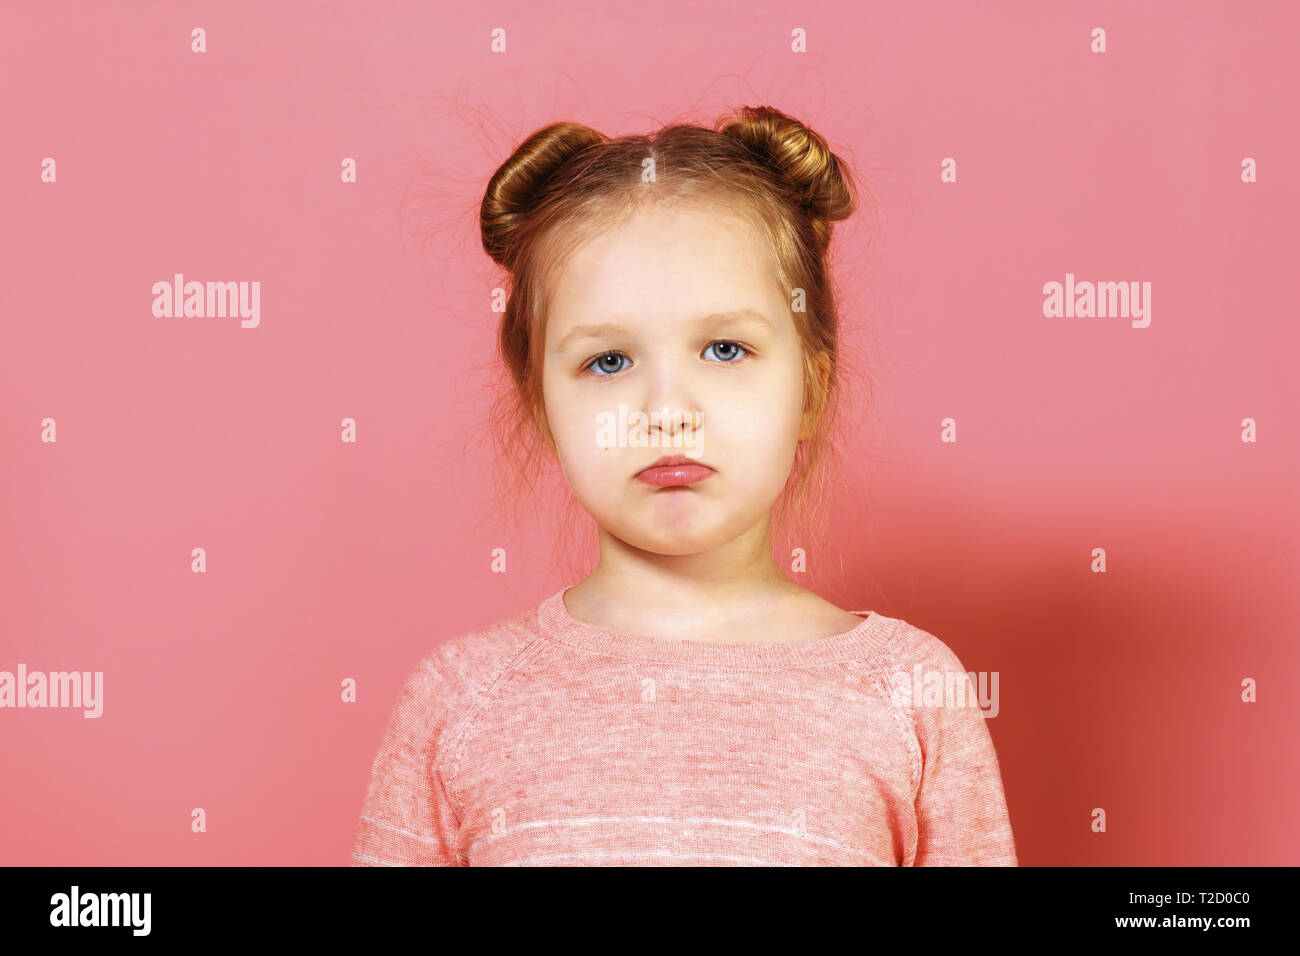 Closeup portrait of upset little girl with wisps of hair over pink background. The child pouted his lips. - Stock Image